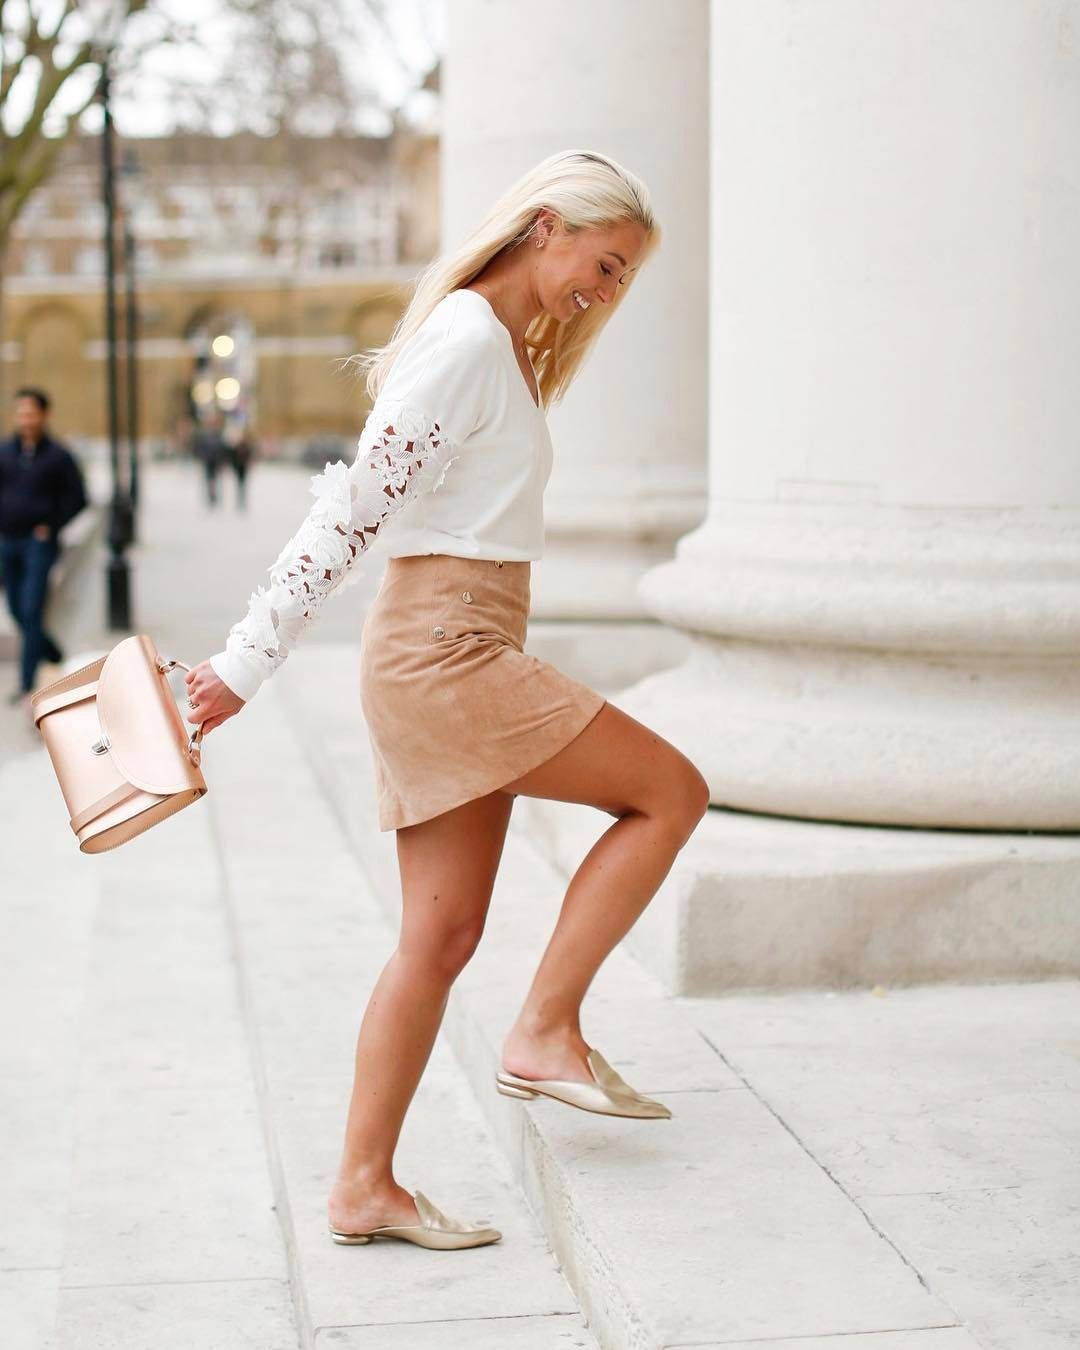 Pin by Emma Elizabeth Brown on Fashion Outfits in 2019 ...